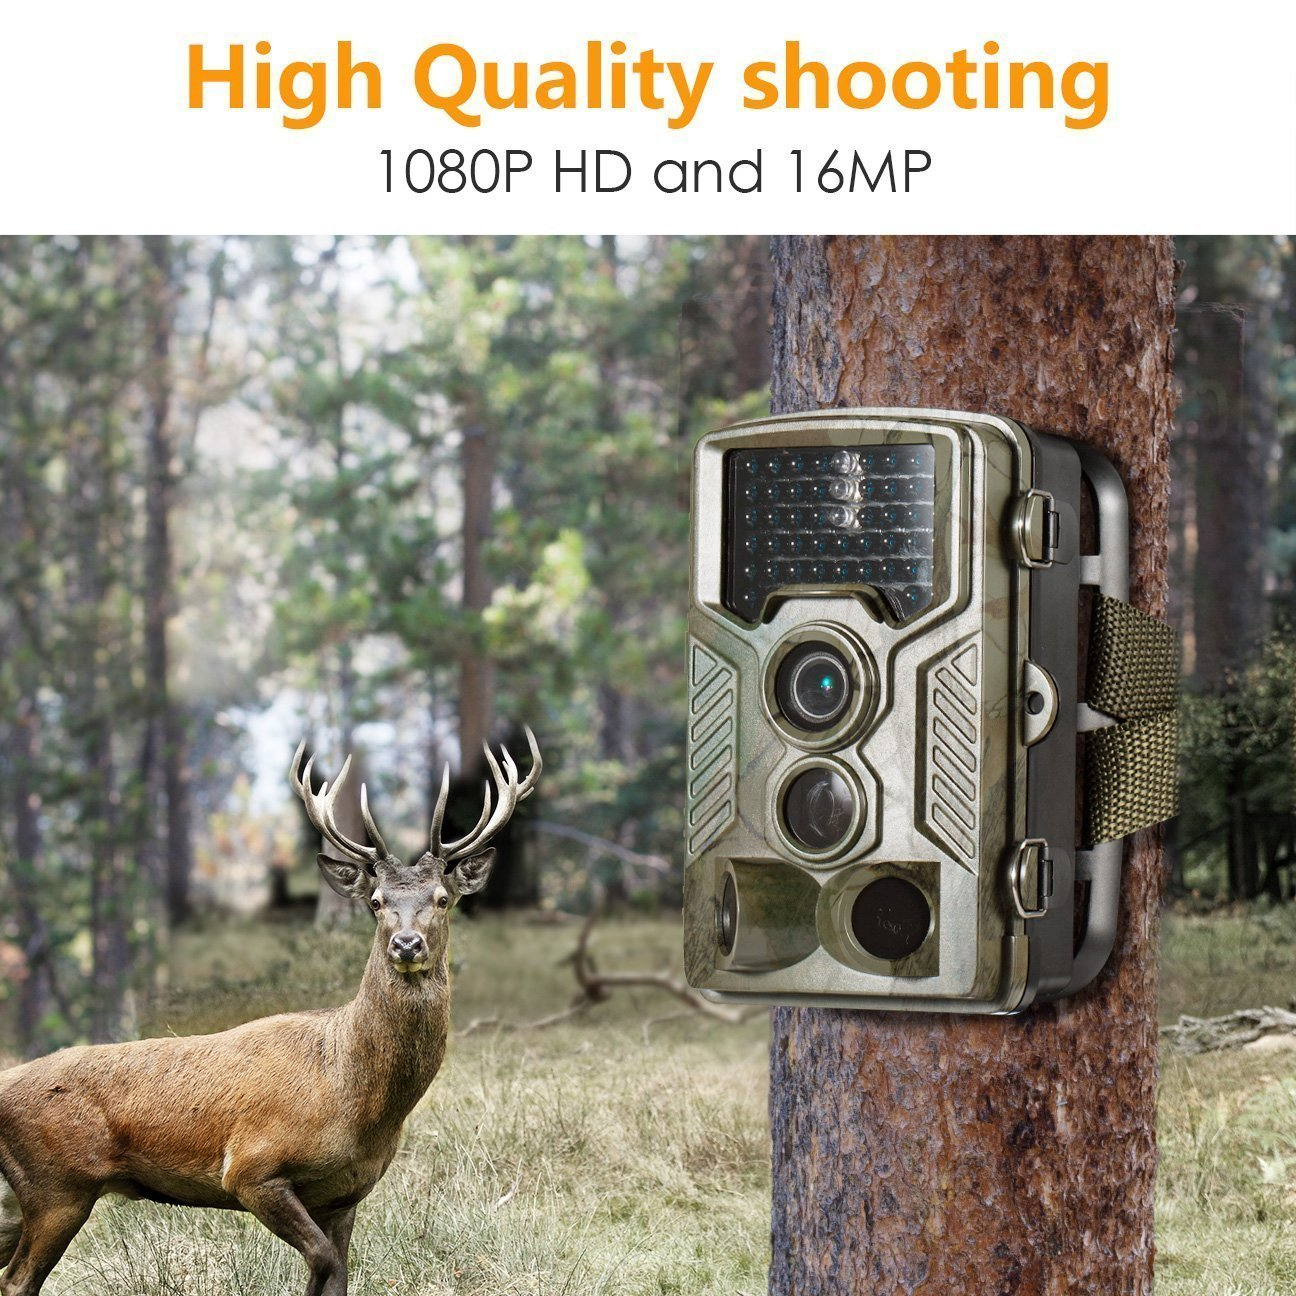 Ip Trail hunting camera 16MP 1080p 120° PIR Sensor wildlife game camera 65ft Infrared Scouting Camera with night vision 46pcs IR LEDs IP56 waterproof by infinity prodotti (Image #9)